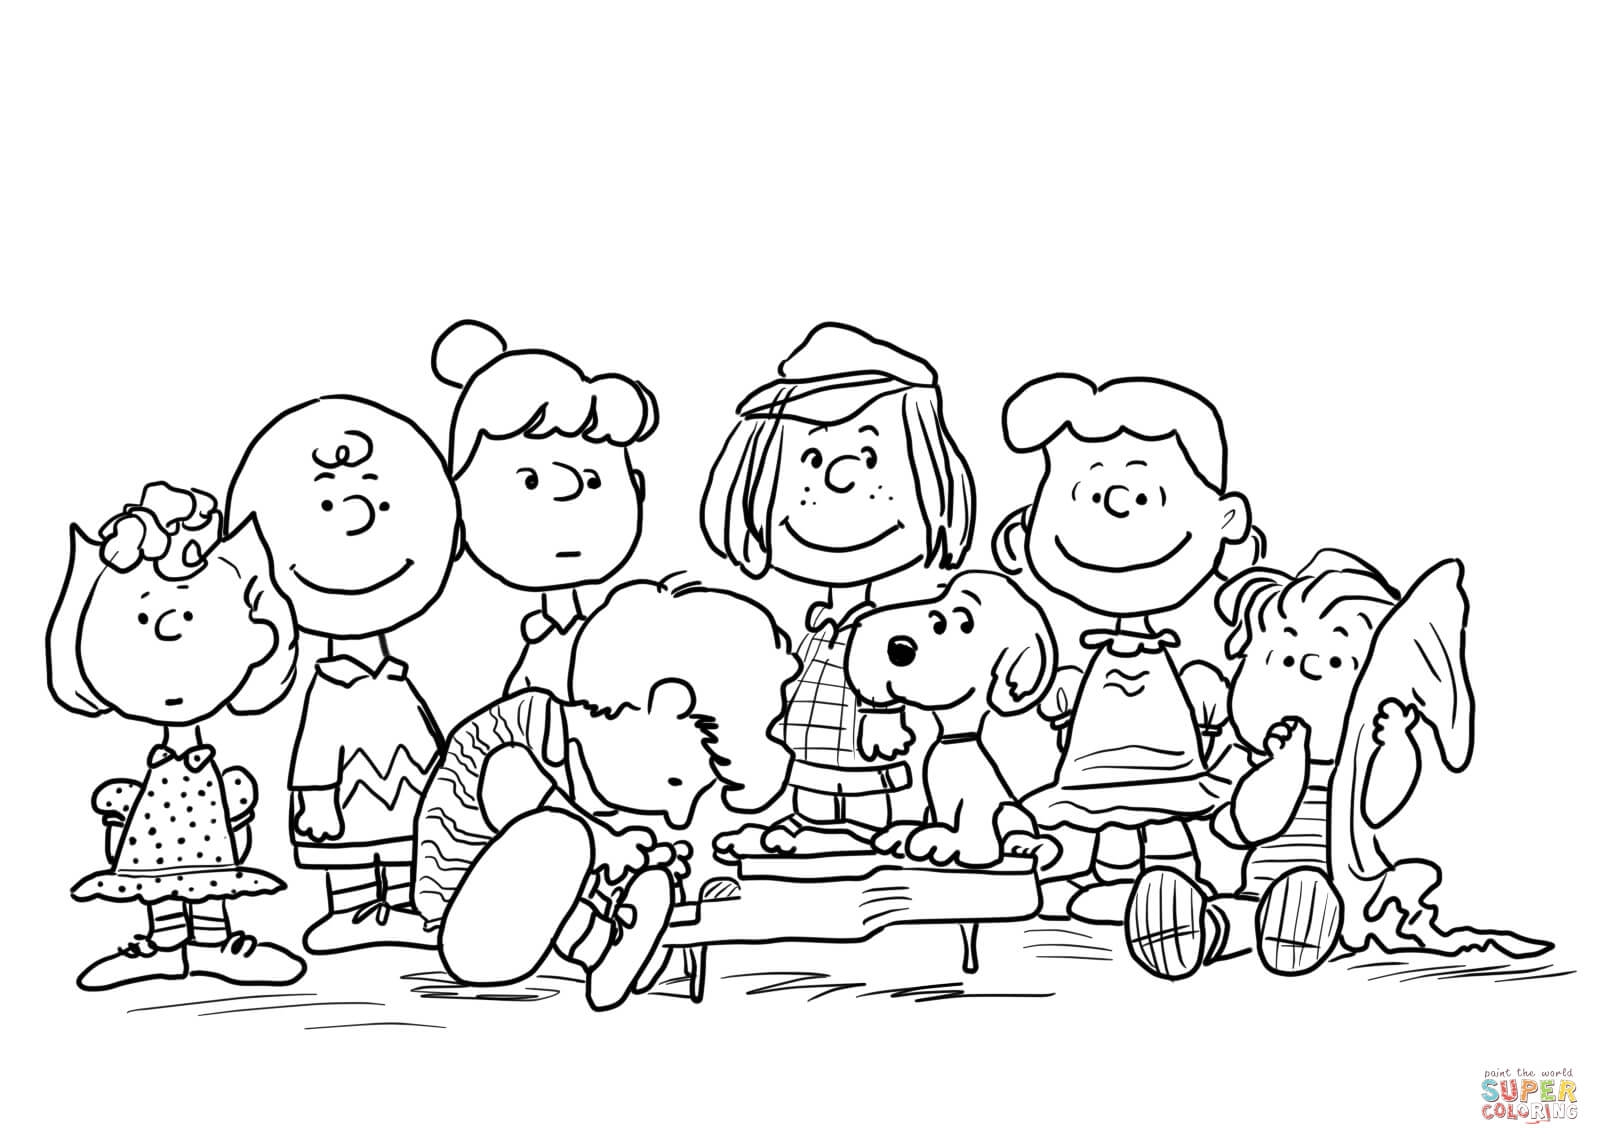 peanuts coloring pages - peanuts characters